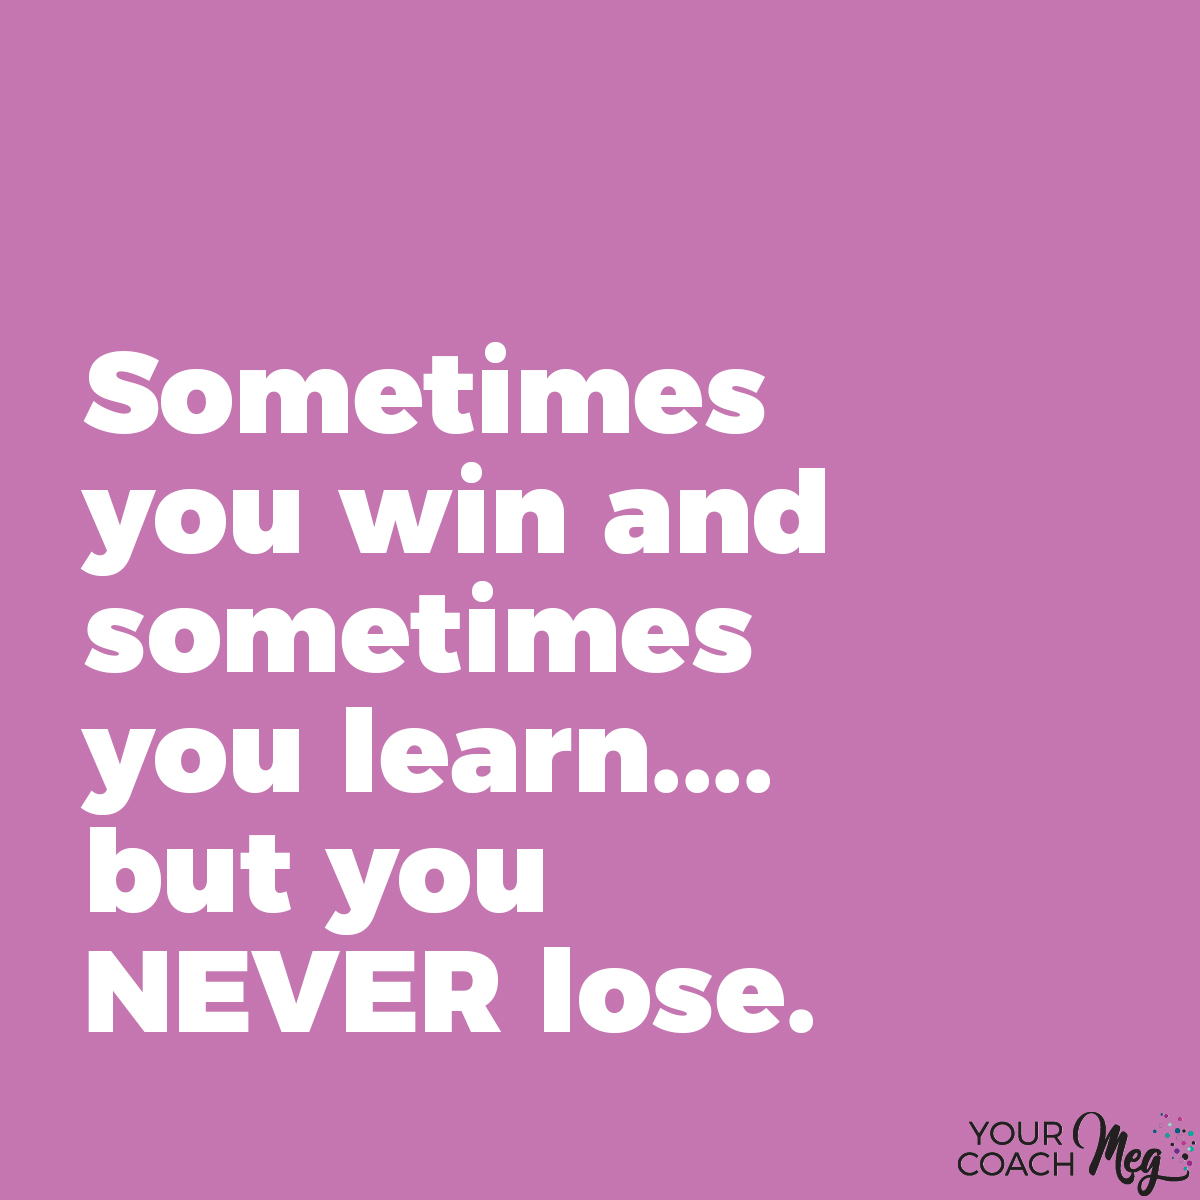 SOMETIMES YOU WIN AND SOMETIMES YOU LEARN, BUT YOU NEVER LOSE -SUCCESS QUOTE